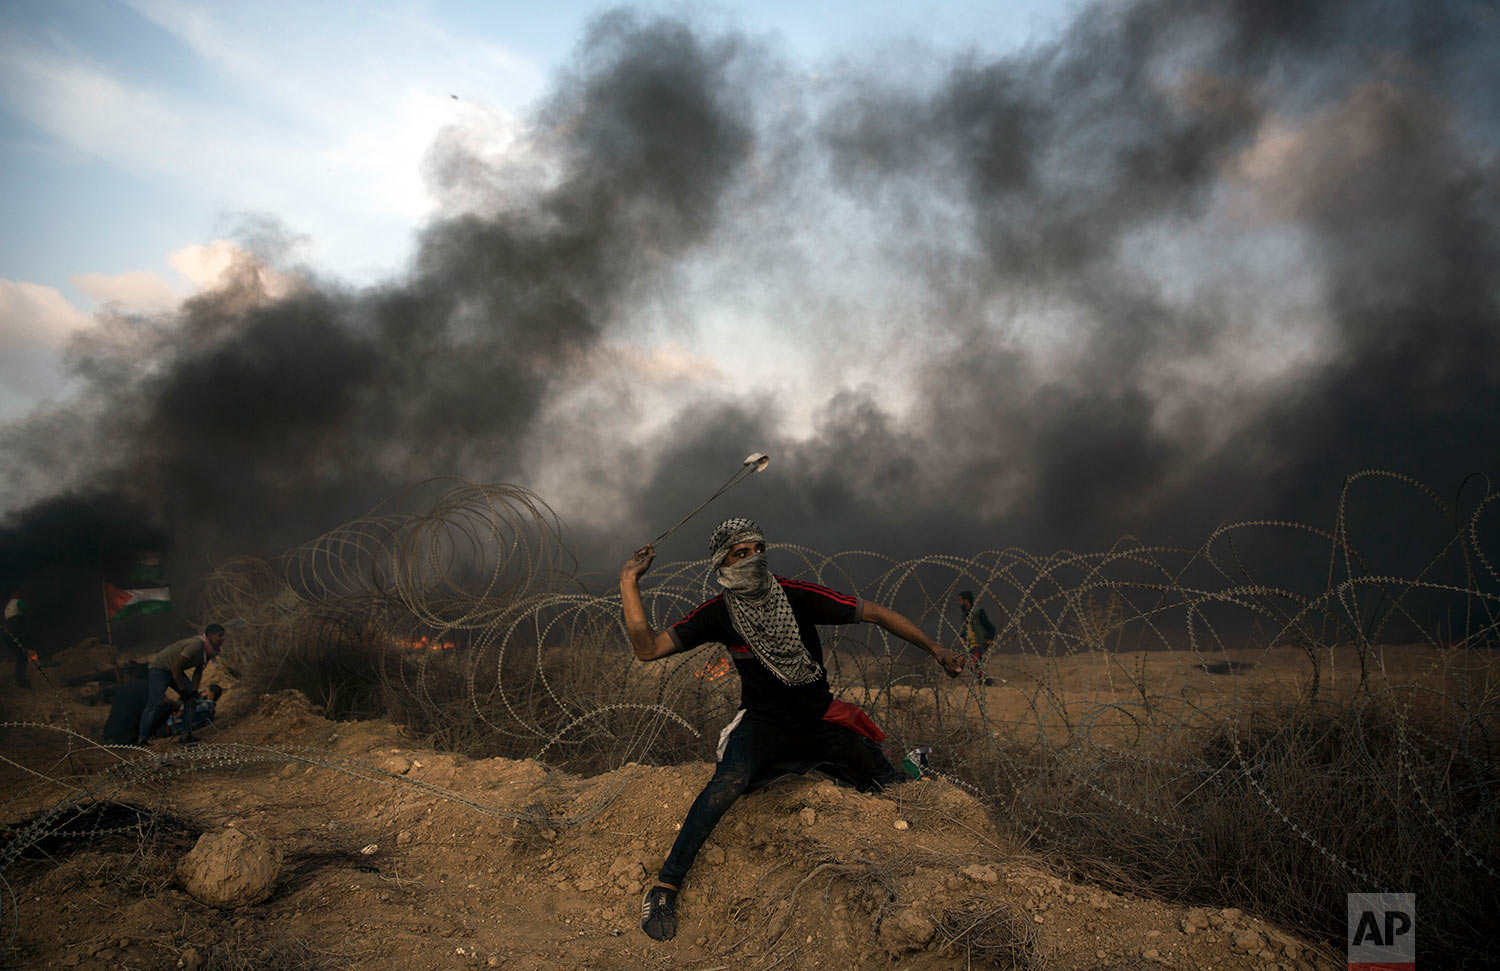 A Palestinian protester hurls stones towards Israeli troops at the Gaza Strip's border with Israel, Oct. 19, 2018. (AP Photo/Khalil Hamra)